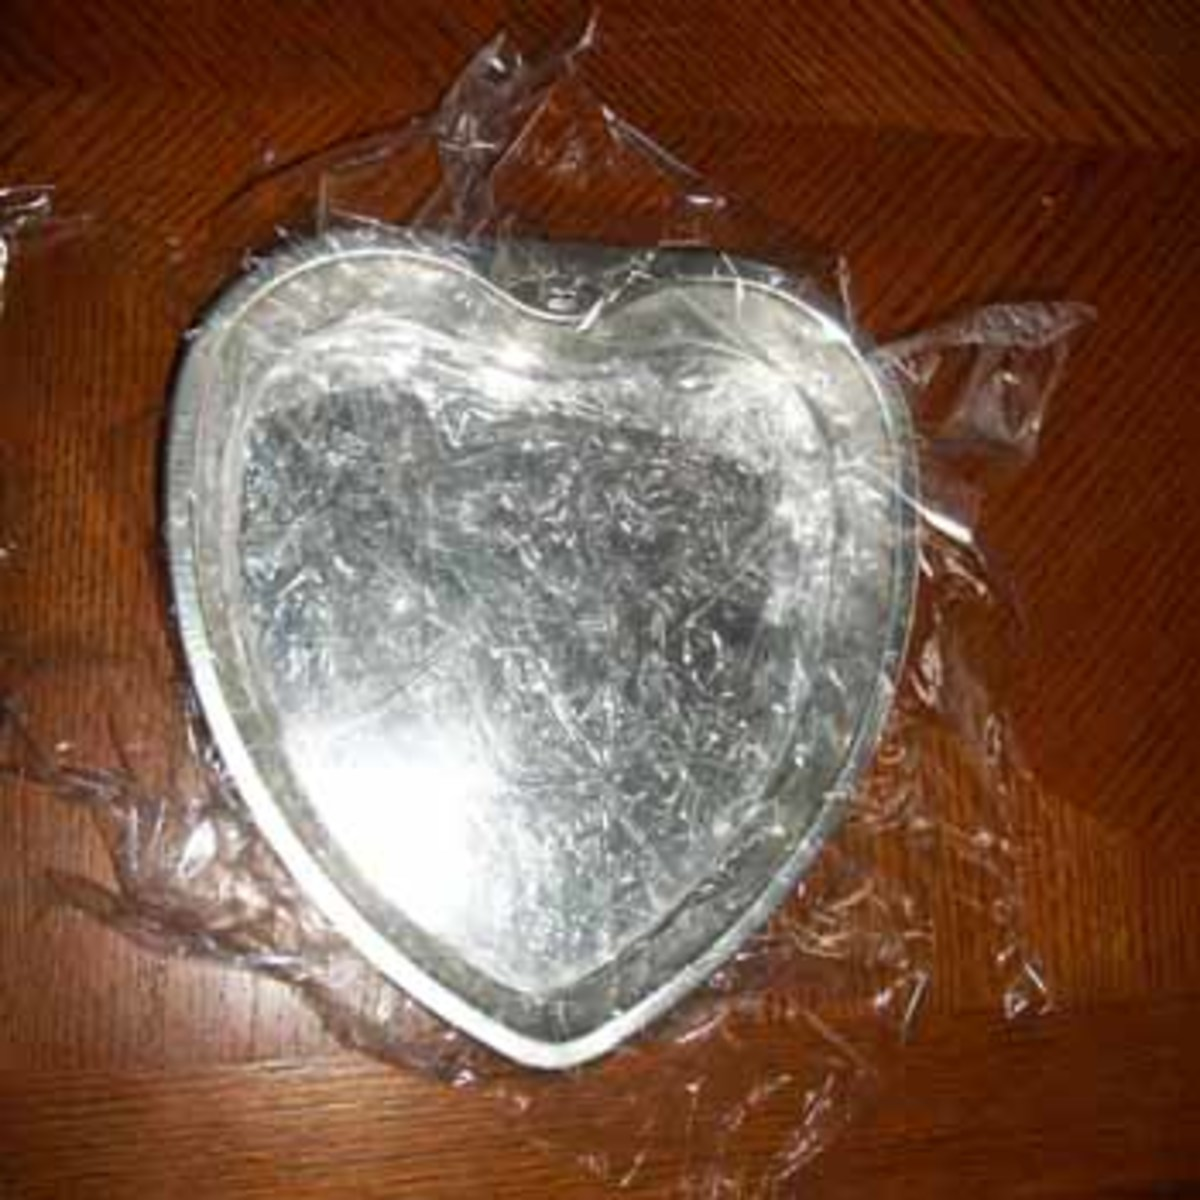 Heart-shaped pan lined with plastic wrap